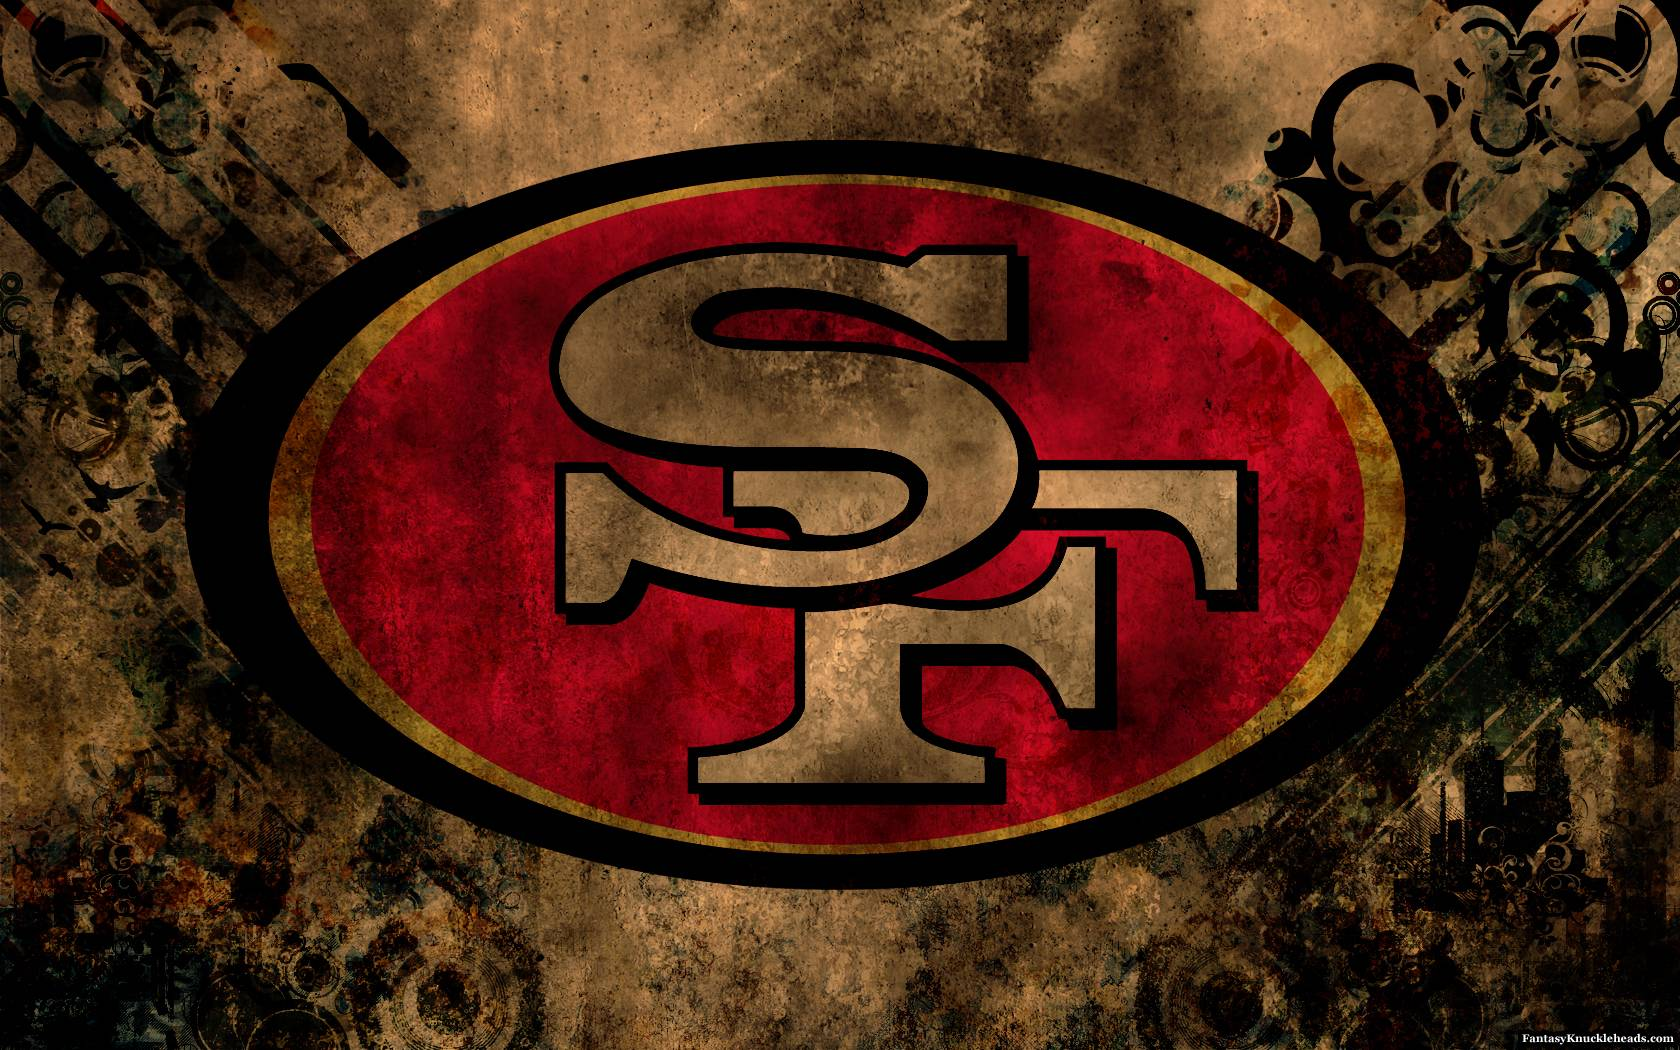 San francisco 49ers wallpapers wallpaper cave san francisco 49ers wallpapers san francisco 49ers background voltagebd Images